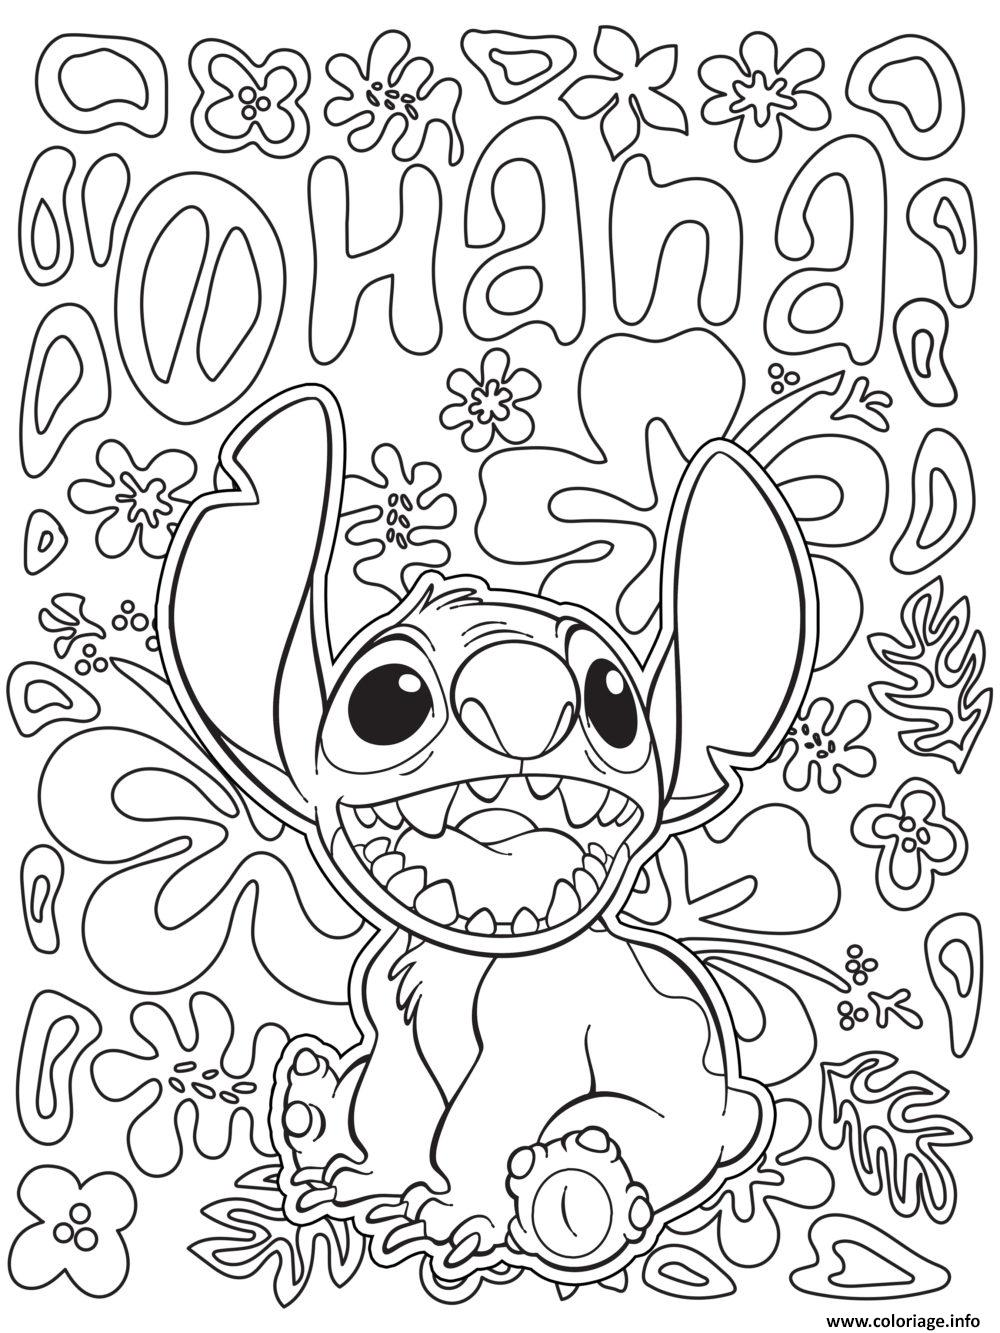 Coloriage Mandala Disney Facile Stitch From Lilo And Stitch Dessin à Imprimer